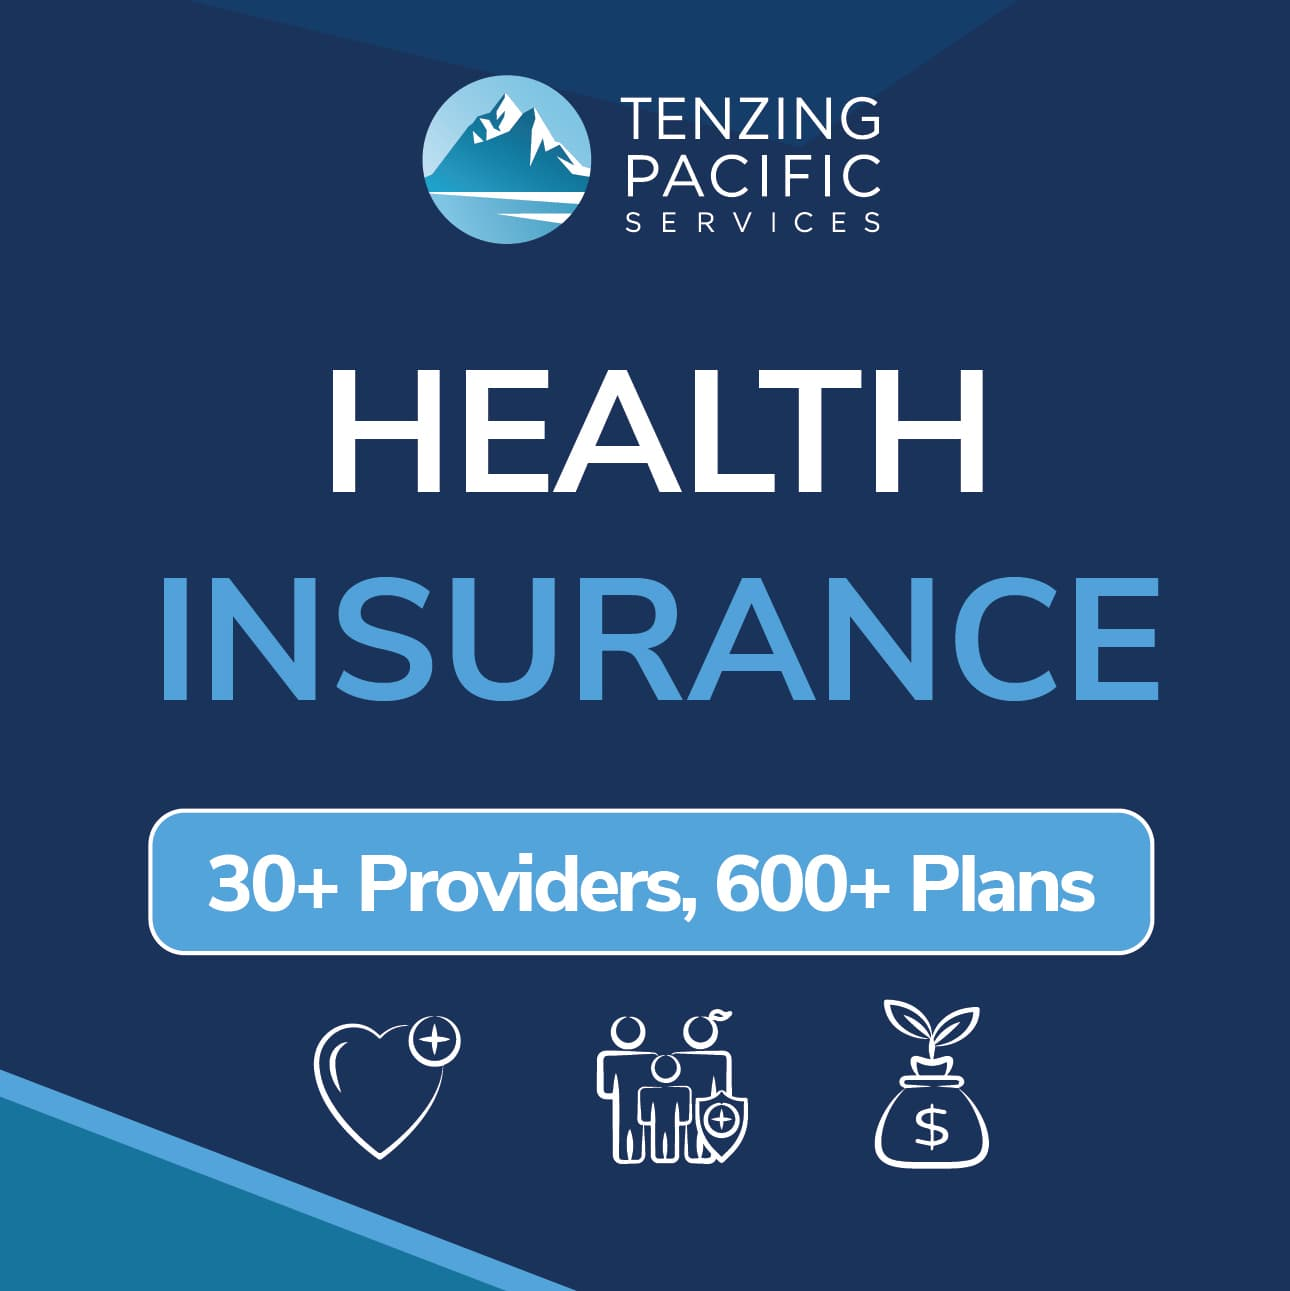 Health Insurance Tenzing Pacific Services square